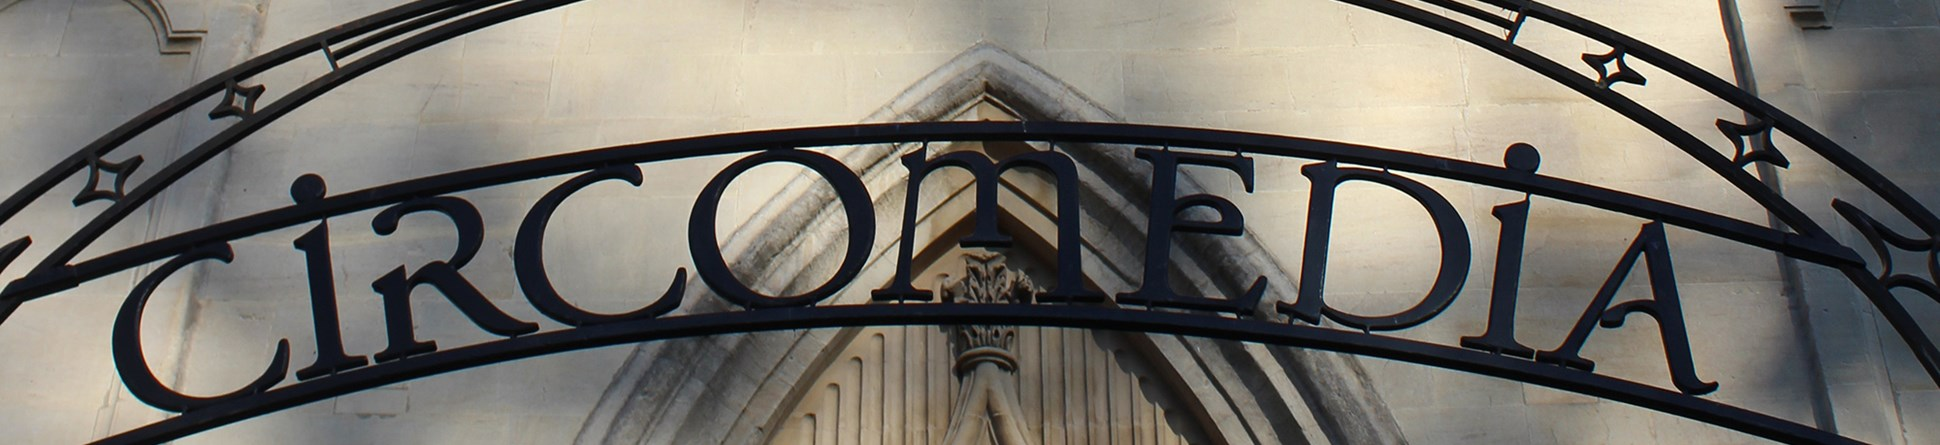 Circomedia sign in wrought iron in front of St Paul's church.